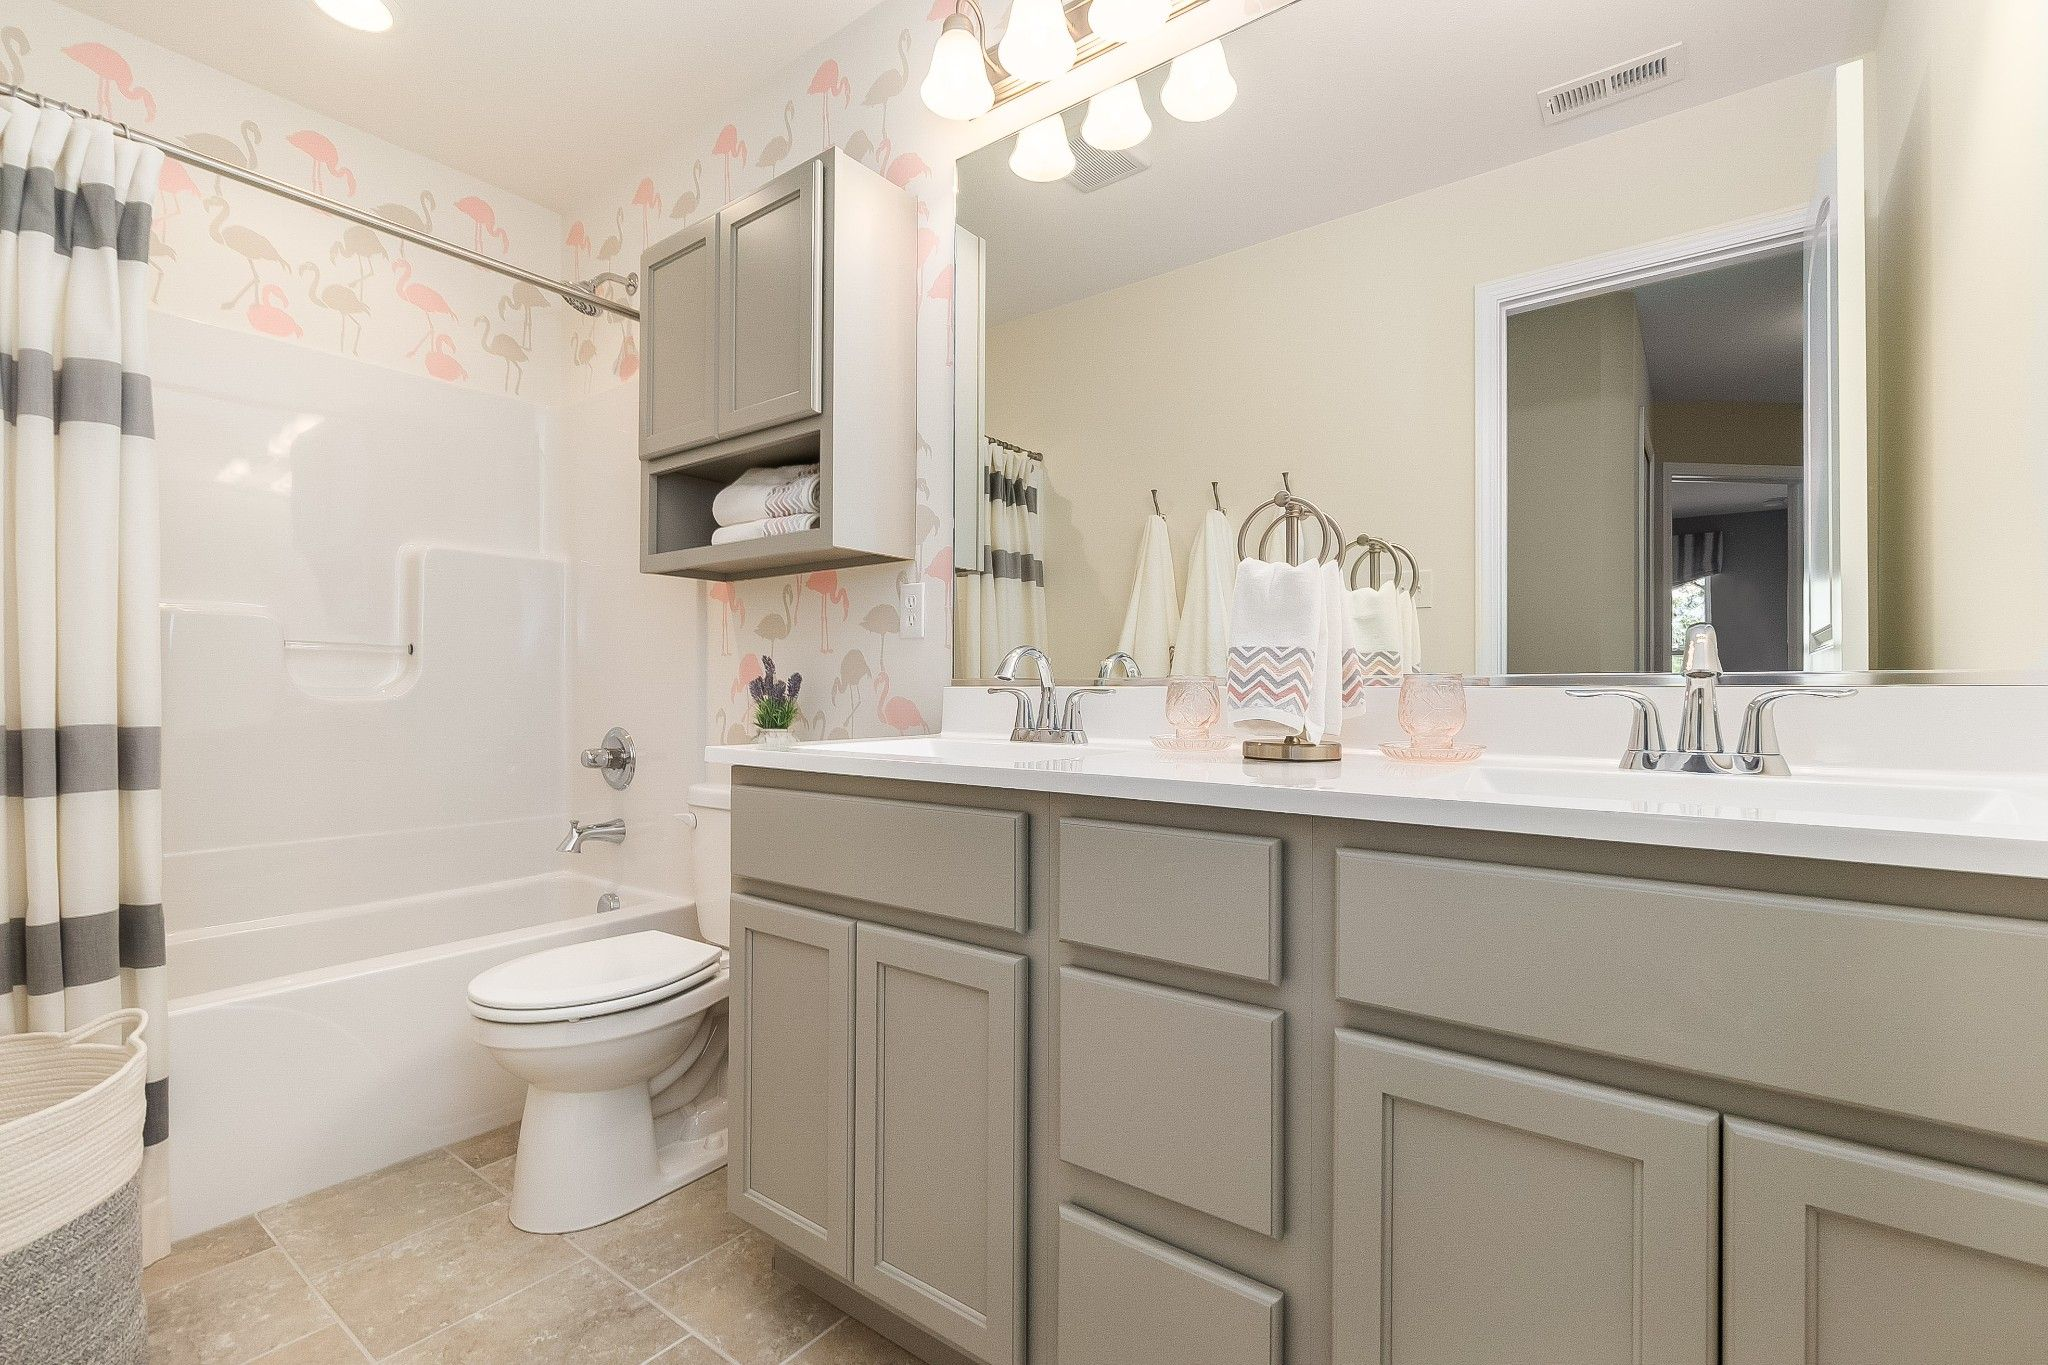 Bathroom featured in the Sedona By Olthof Homes in Indianapolis, IN